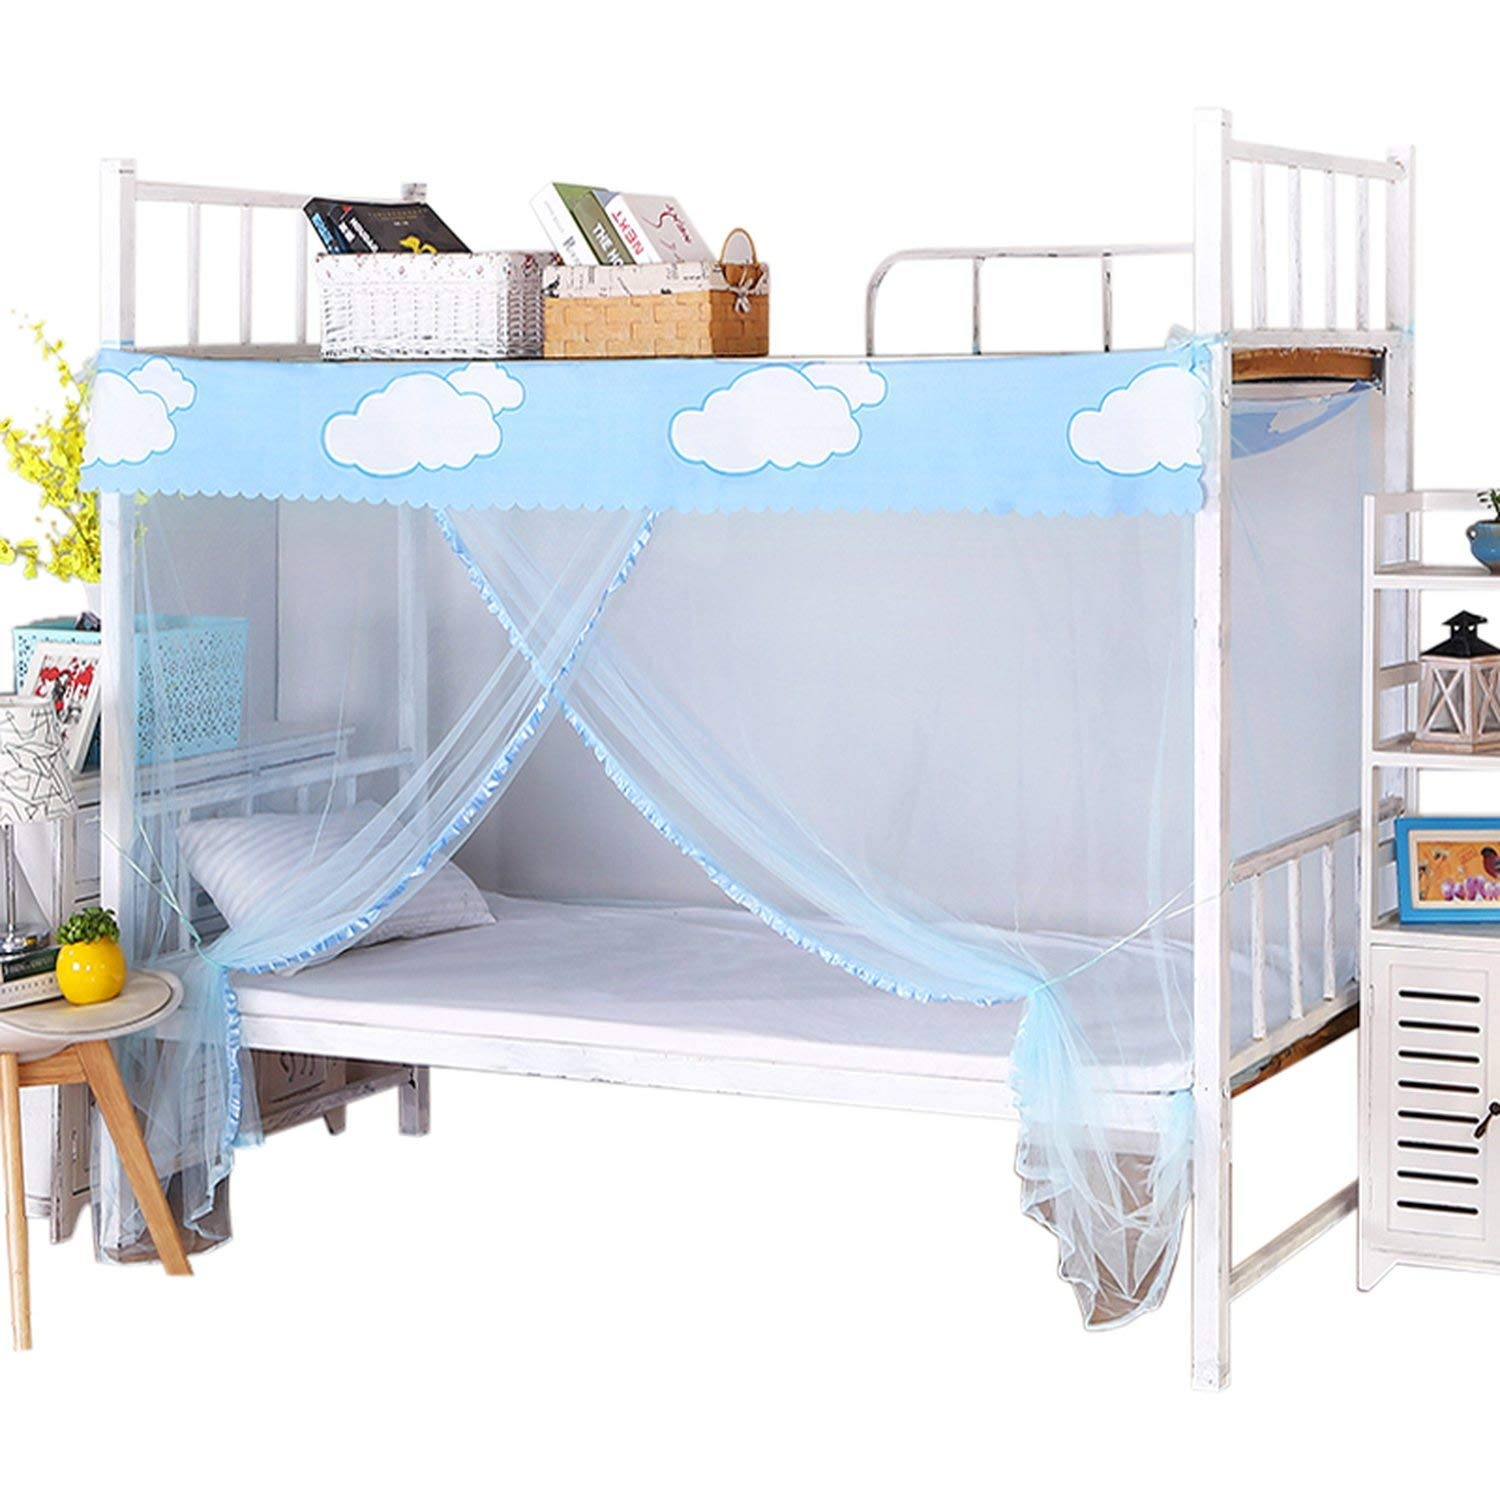 Student Dormitory Mosquito Net 1.2M Single Bed Quadrate Zipper Nets 1.5M Home Repellent Tent Insect Reject Curtain,White,1.5M (5 Feet) Bed